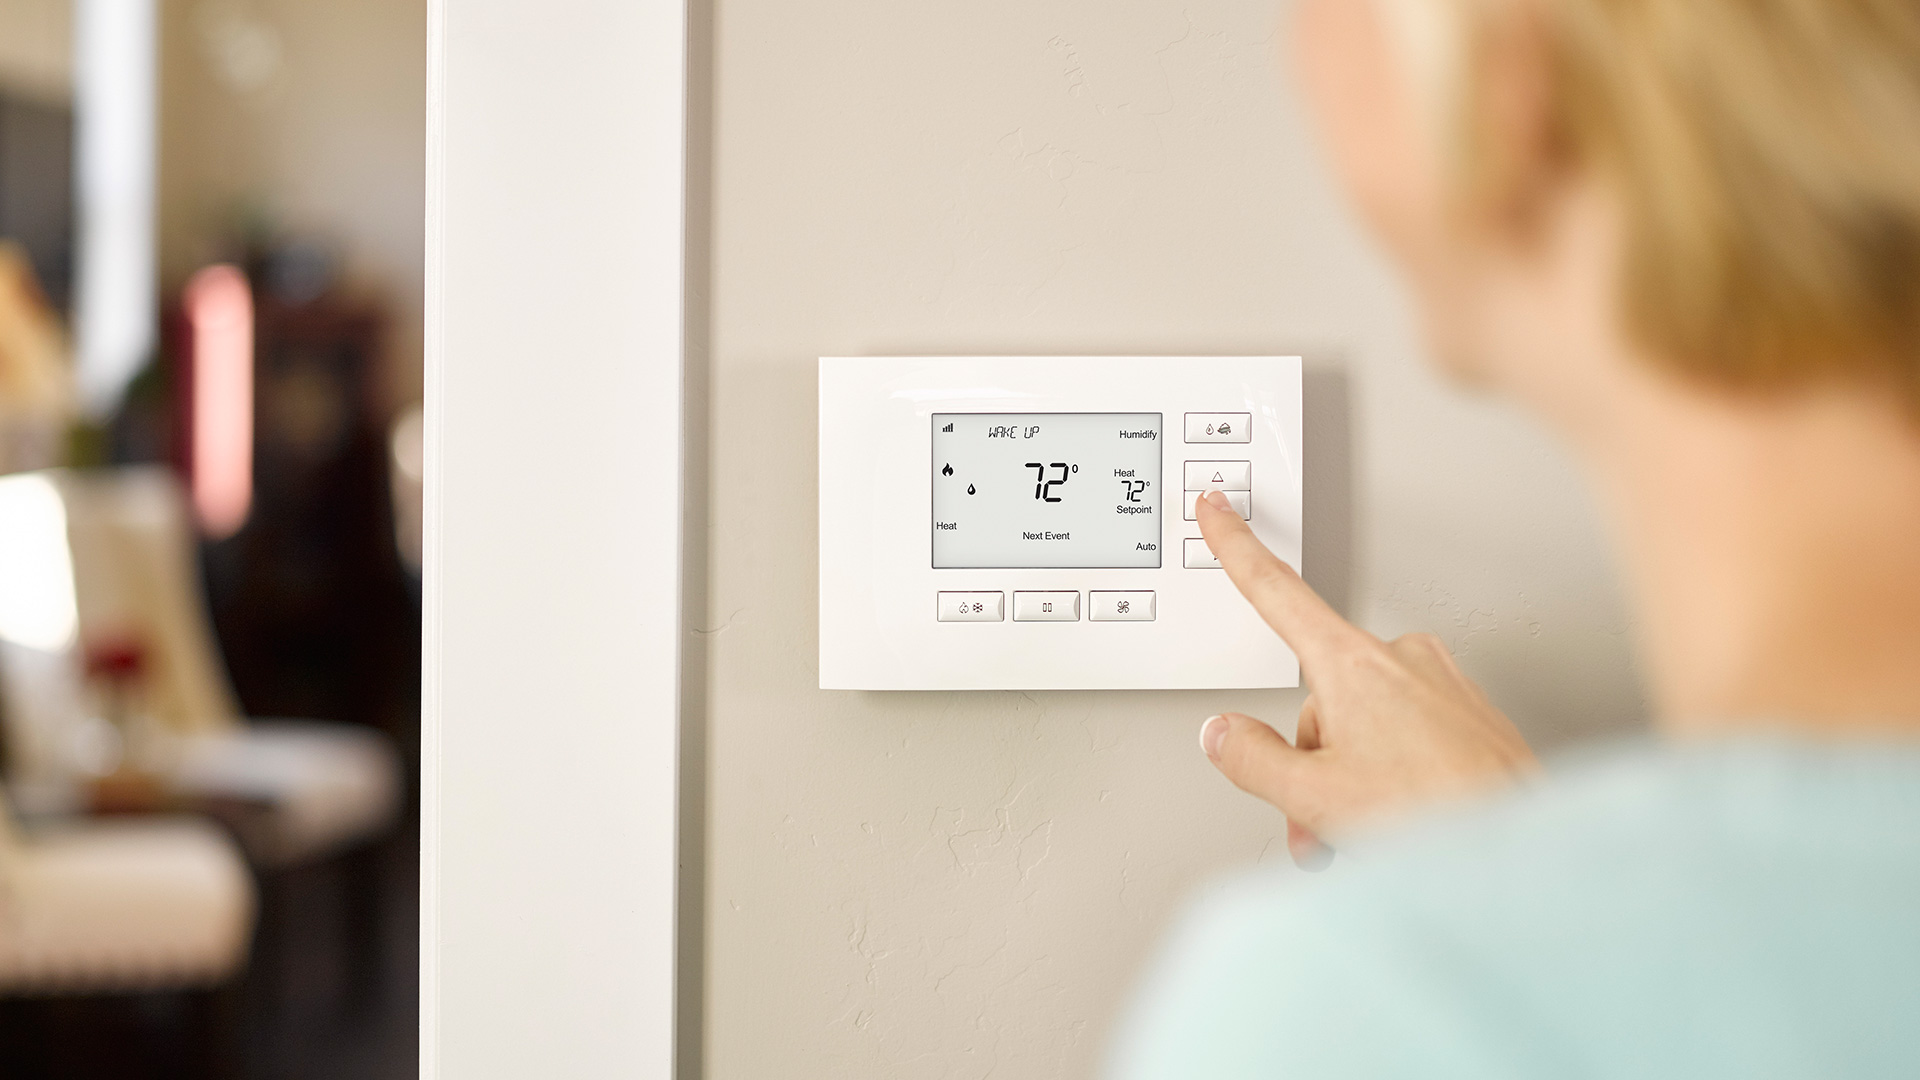 control4-wireless-thermostat-by-aprilaire-smart-home-automation-creative-audio-winnipeg.jpg